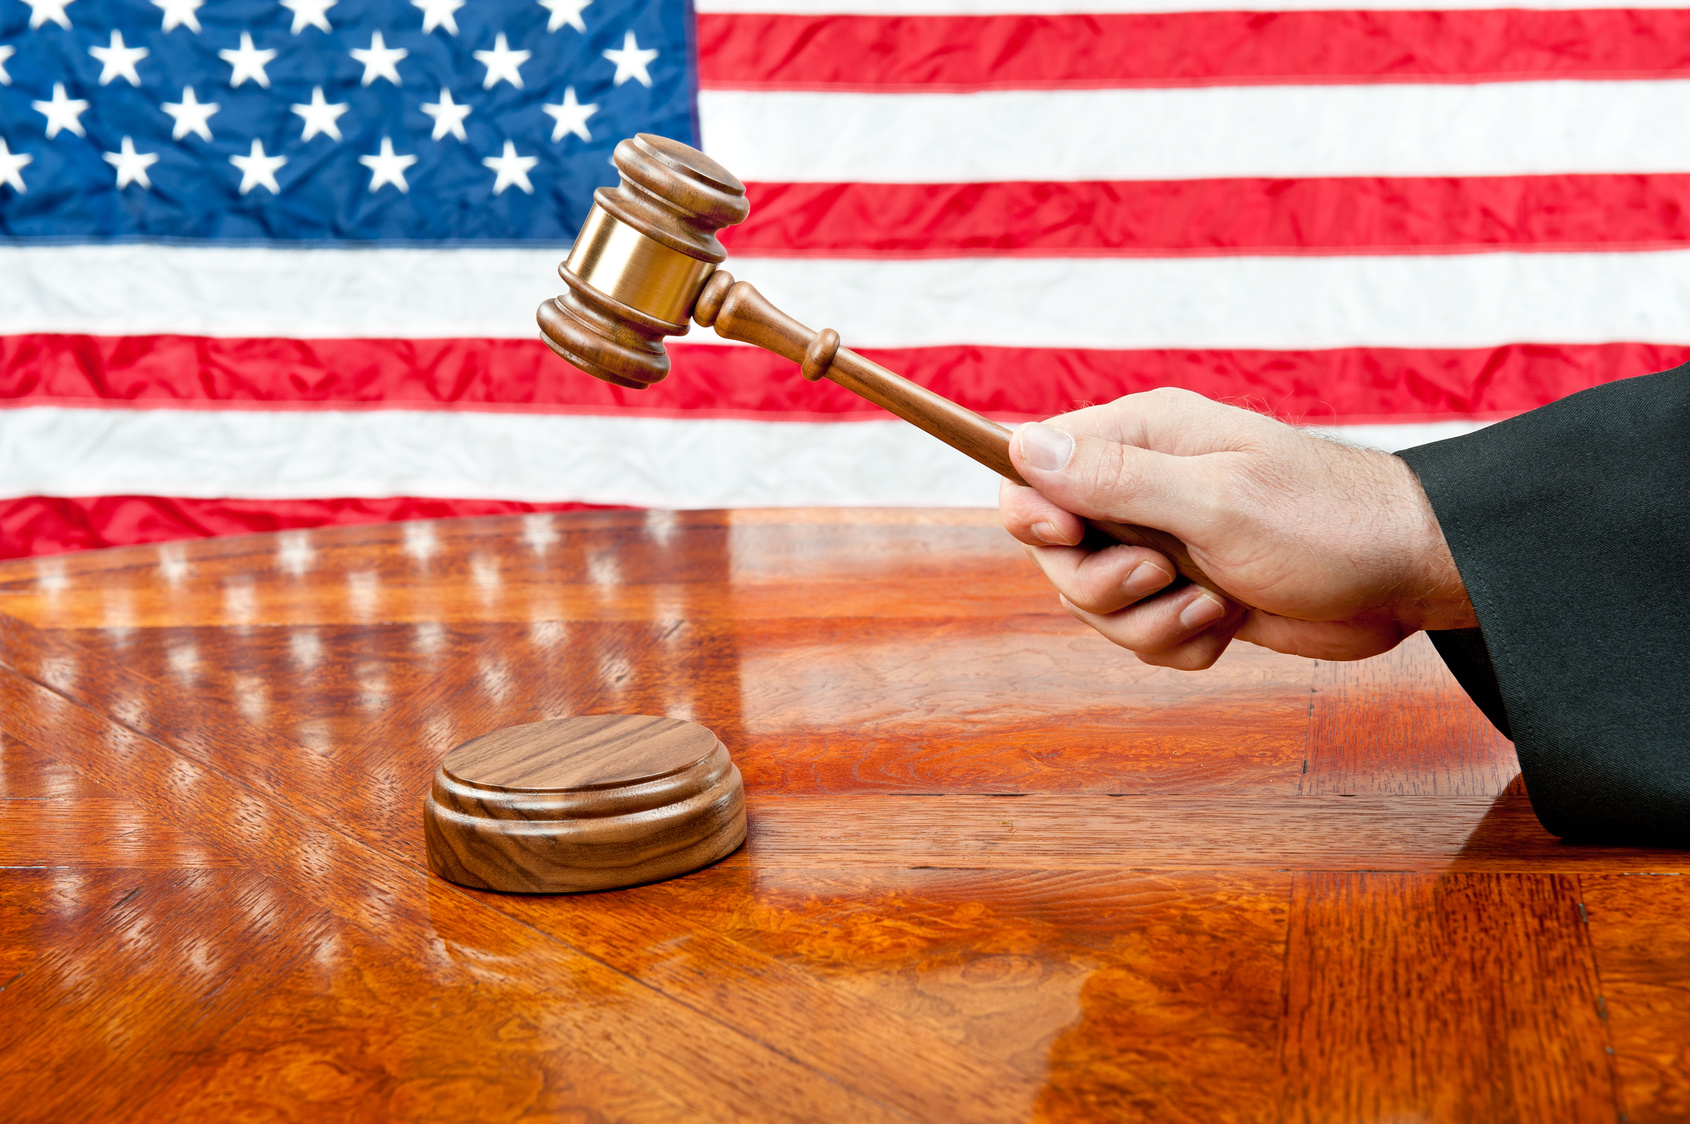 A judge's gown and gavel with sound block on deep, rich colored wooden desktop and American flag